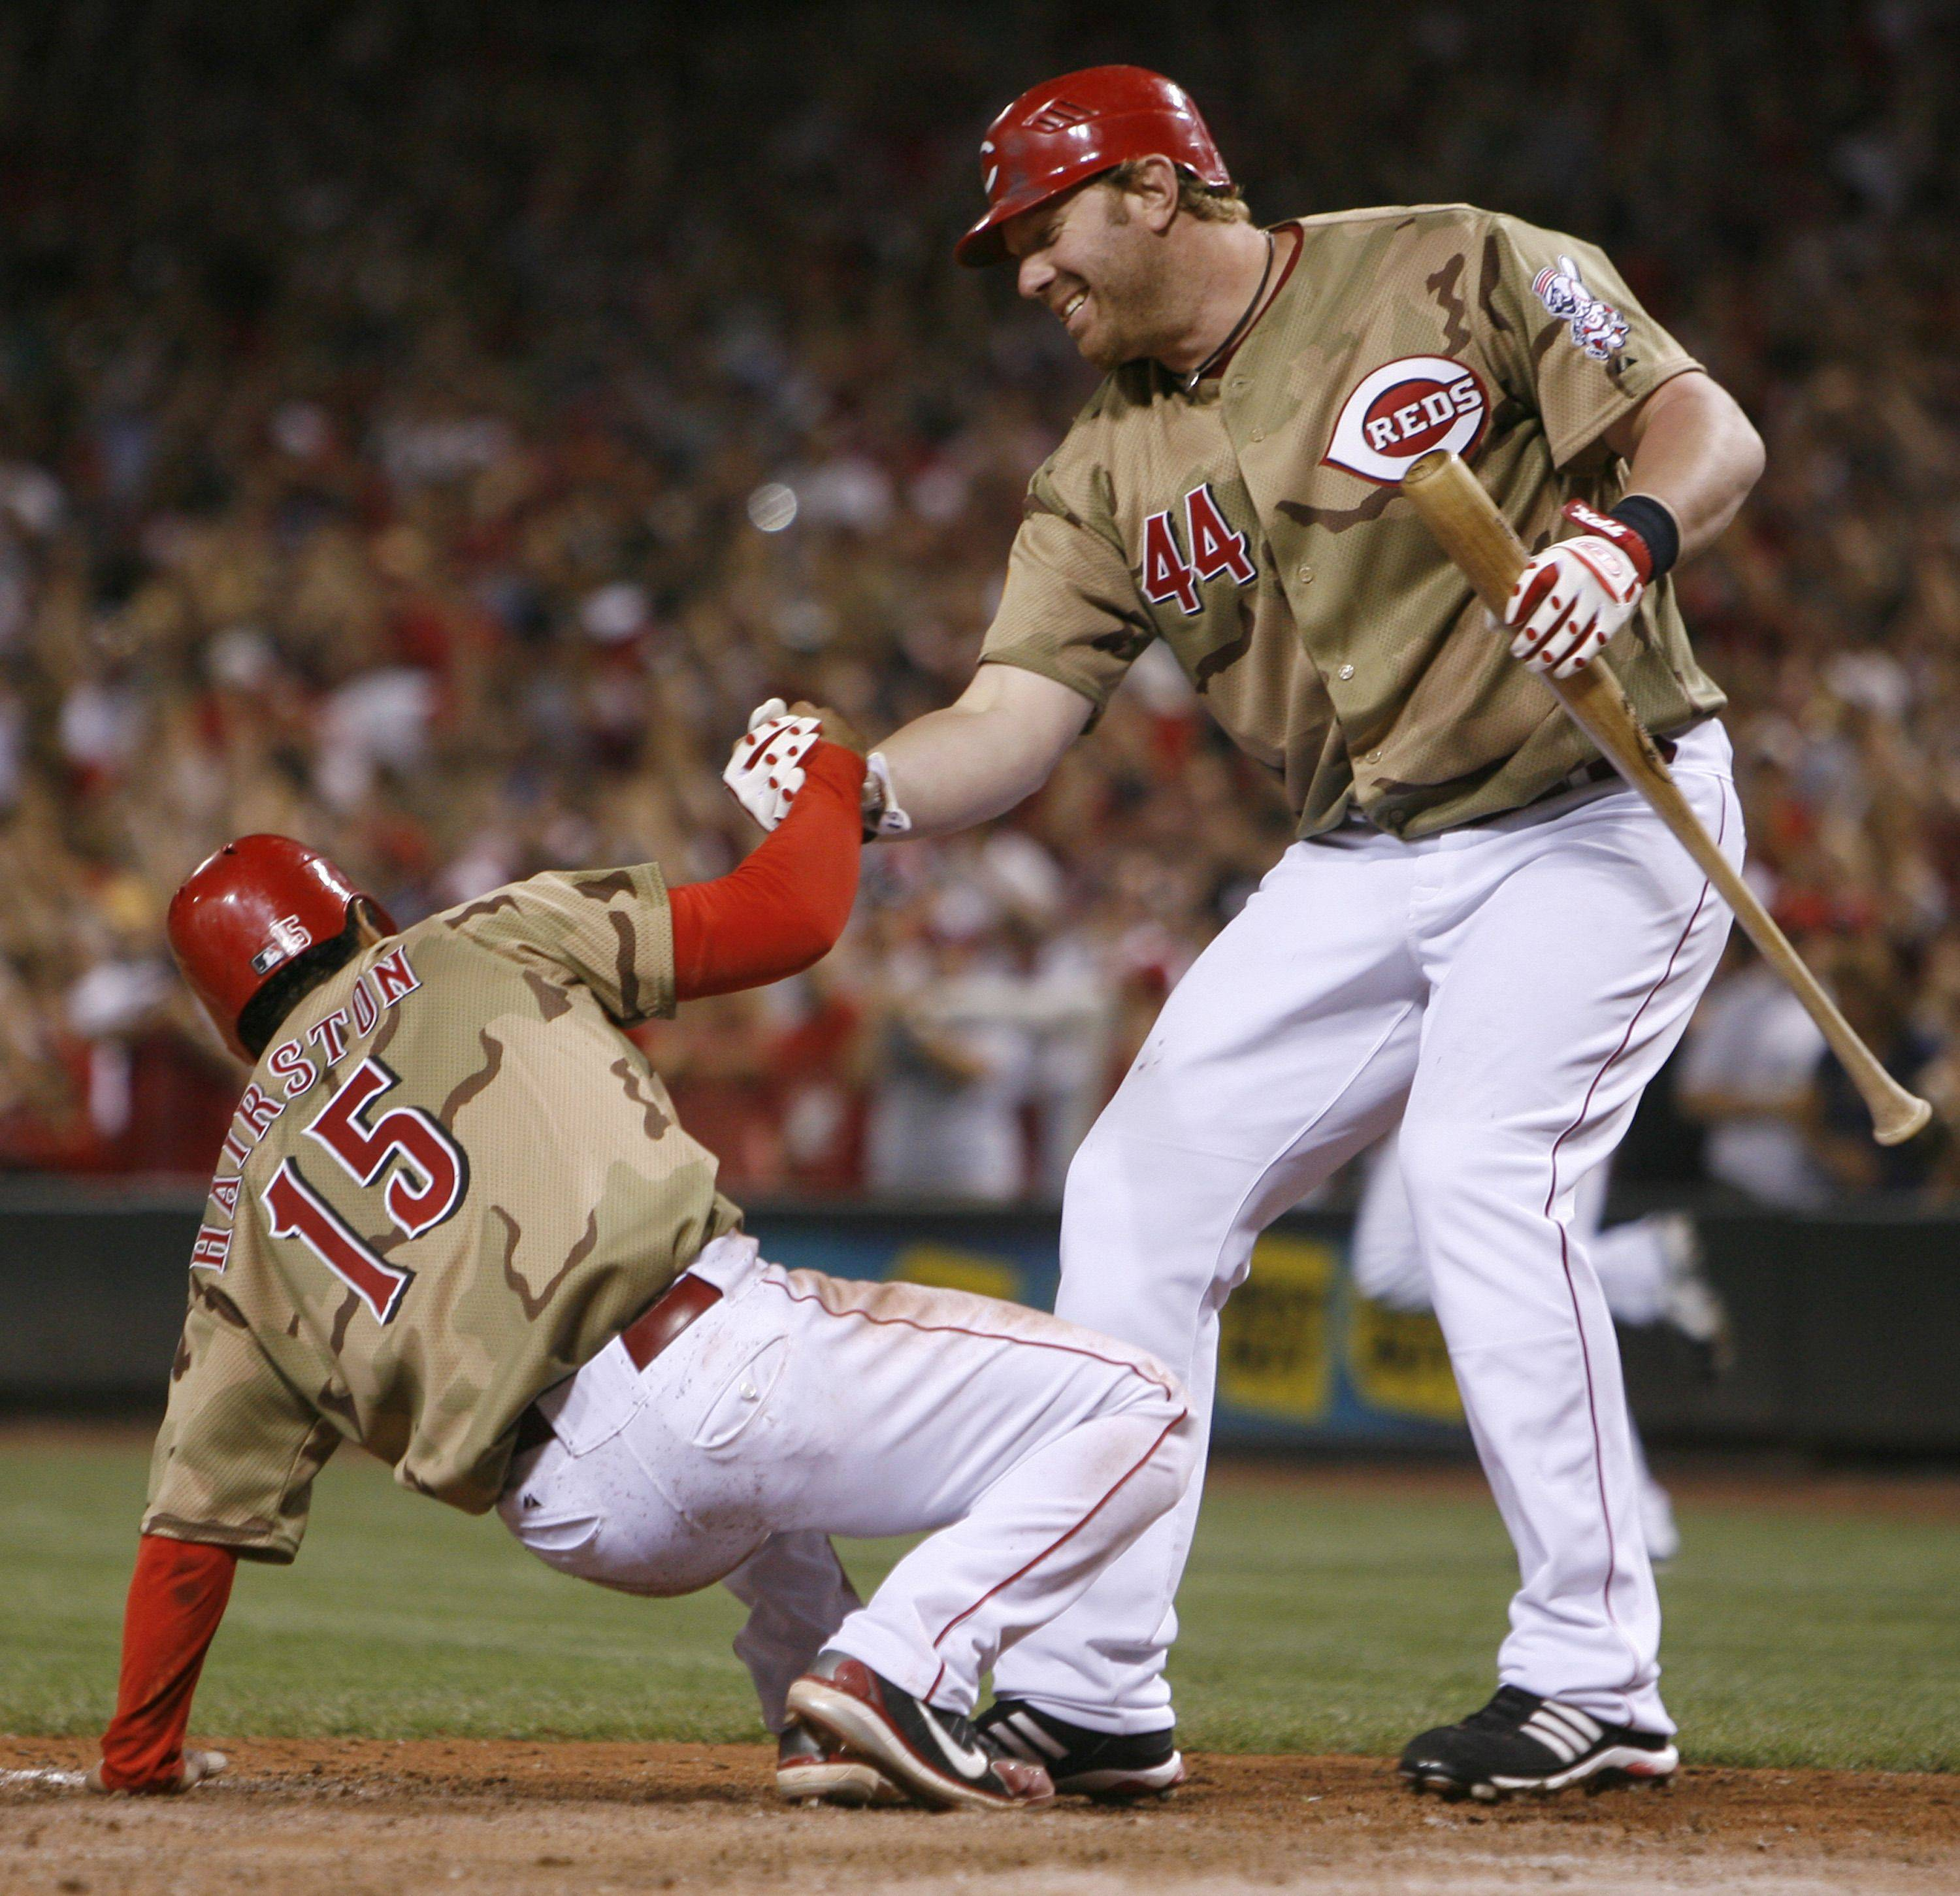 Cincinnati Reds' Jerry Hairston Jr., (15) is picked up from home plate by Adam Dunn (44) after Hairston Jr. , Saturday, July 5, 2008 in Cincinnati.